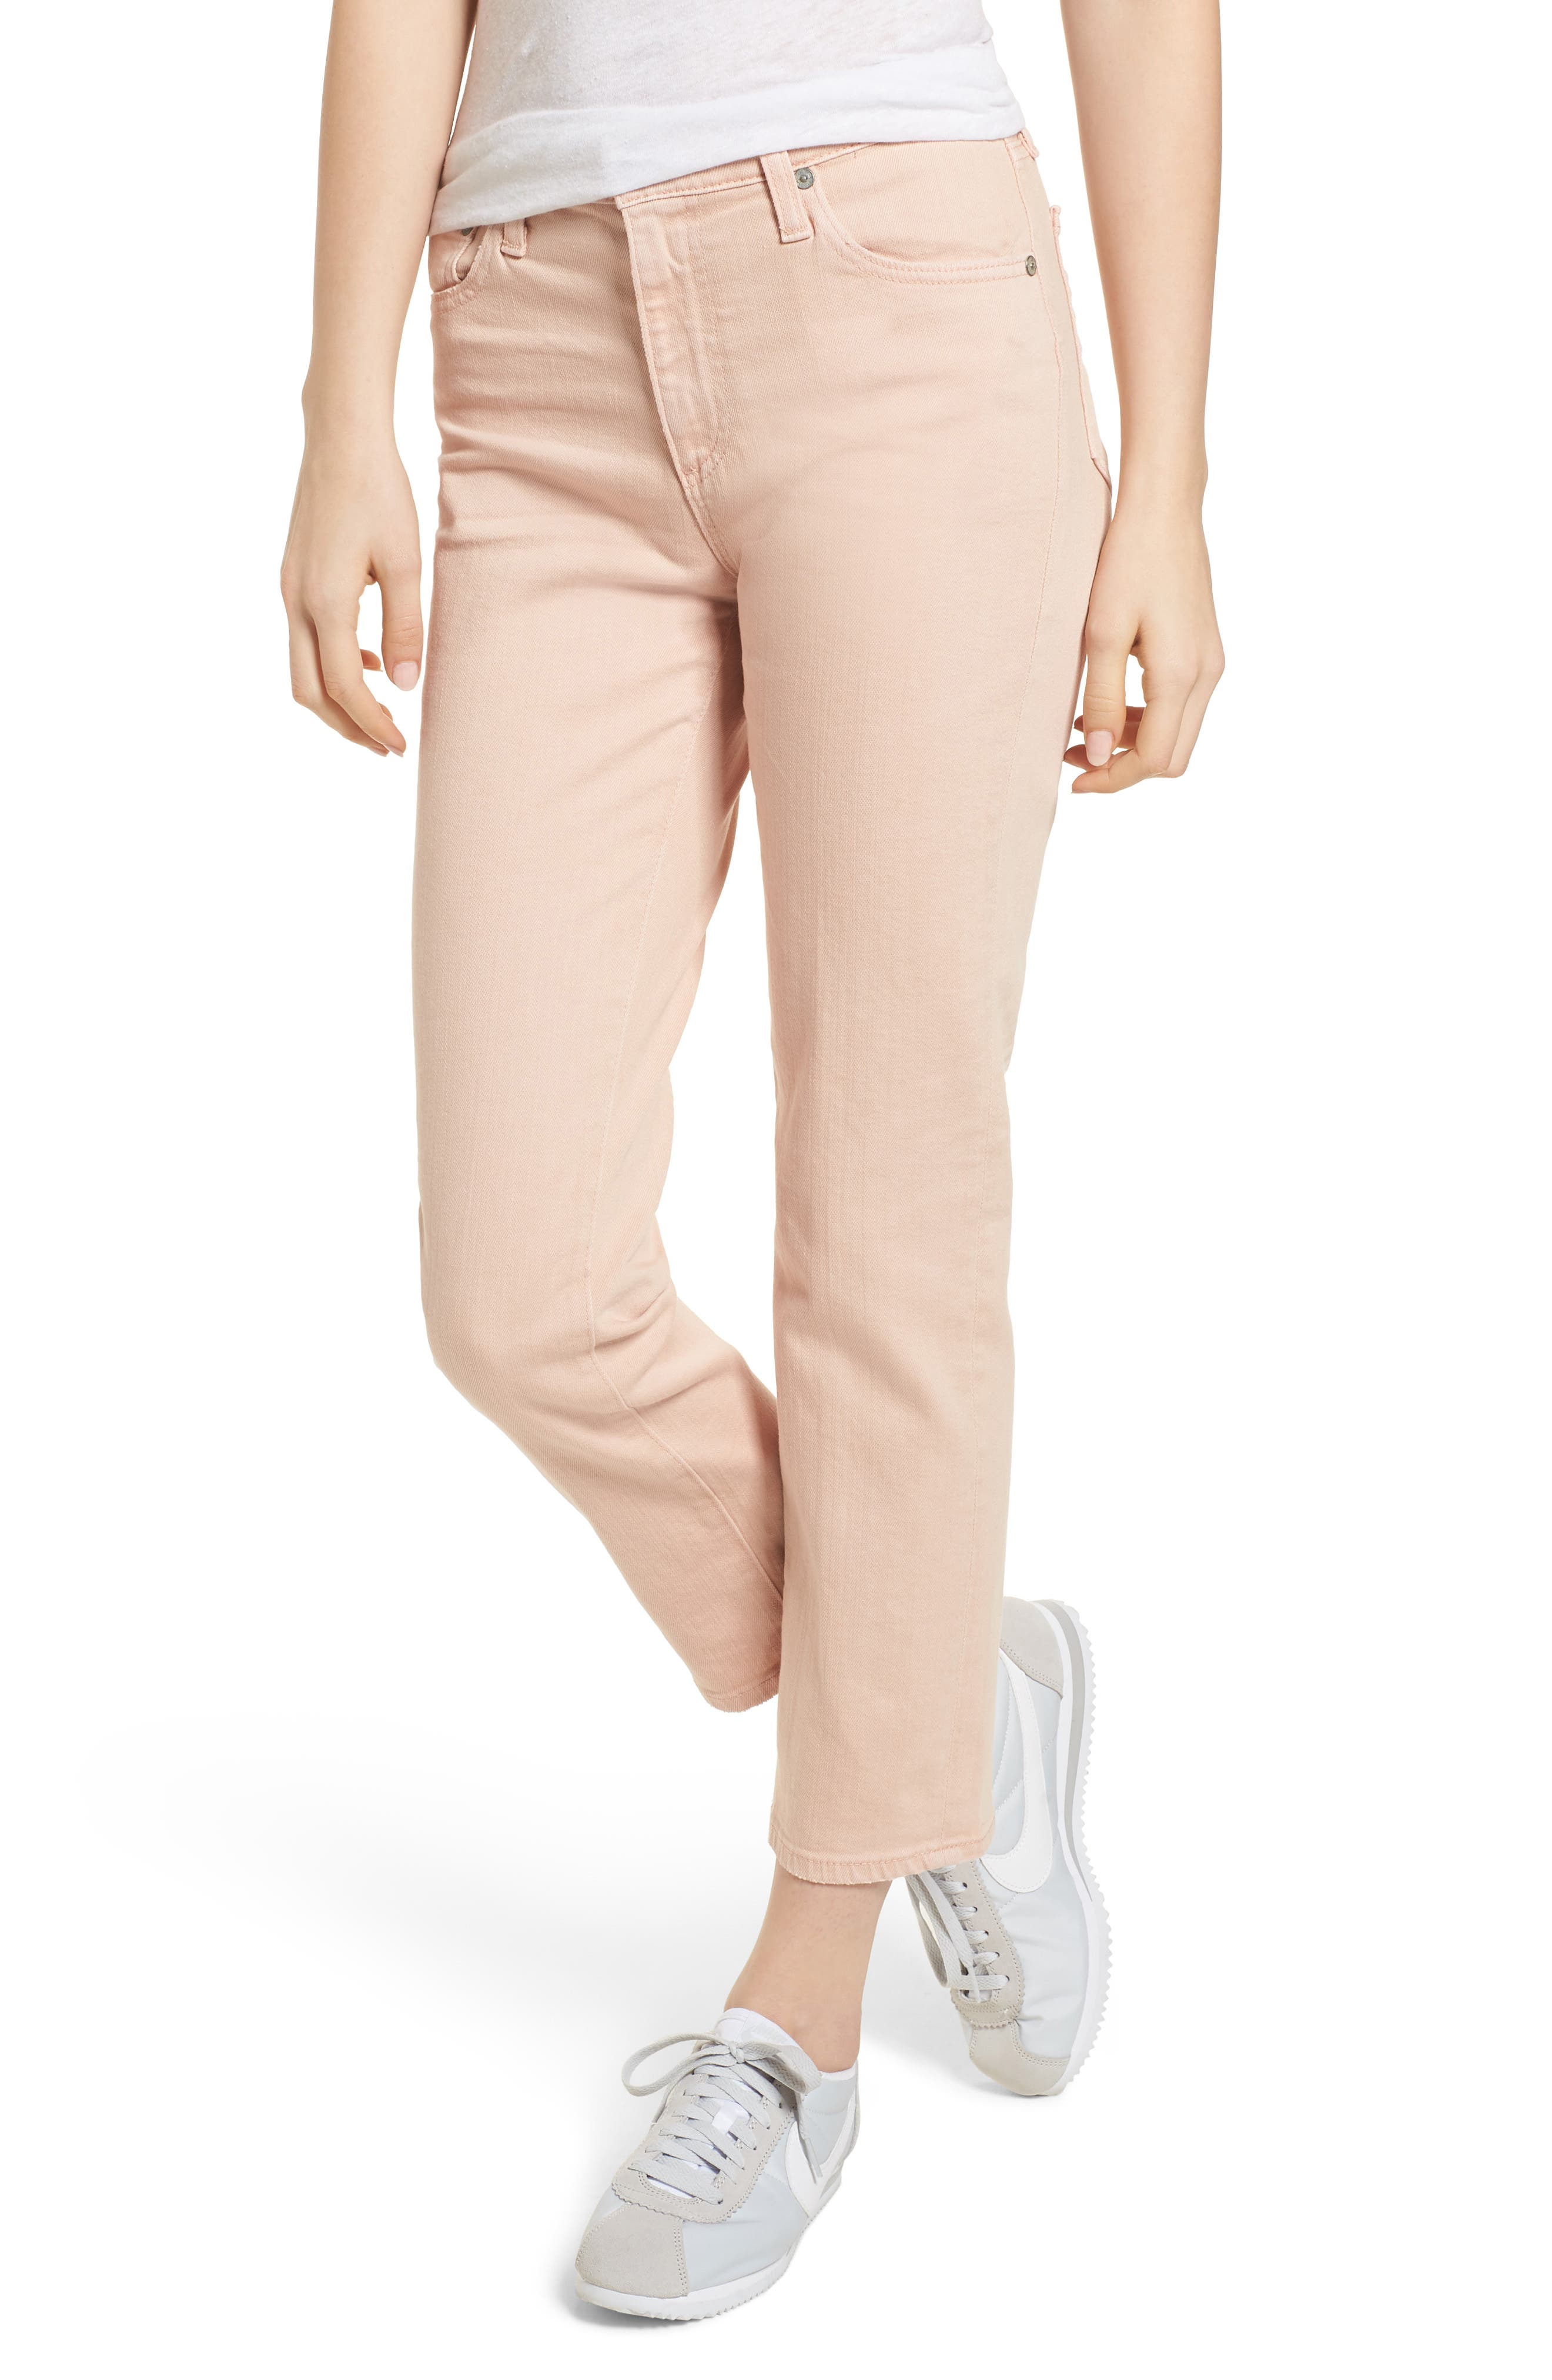 The Isabelle High Waist Crop Straight Leg Jeans,                             Main thumbnail 1, color,                             1 Year Sulfur Rosy Rogue